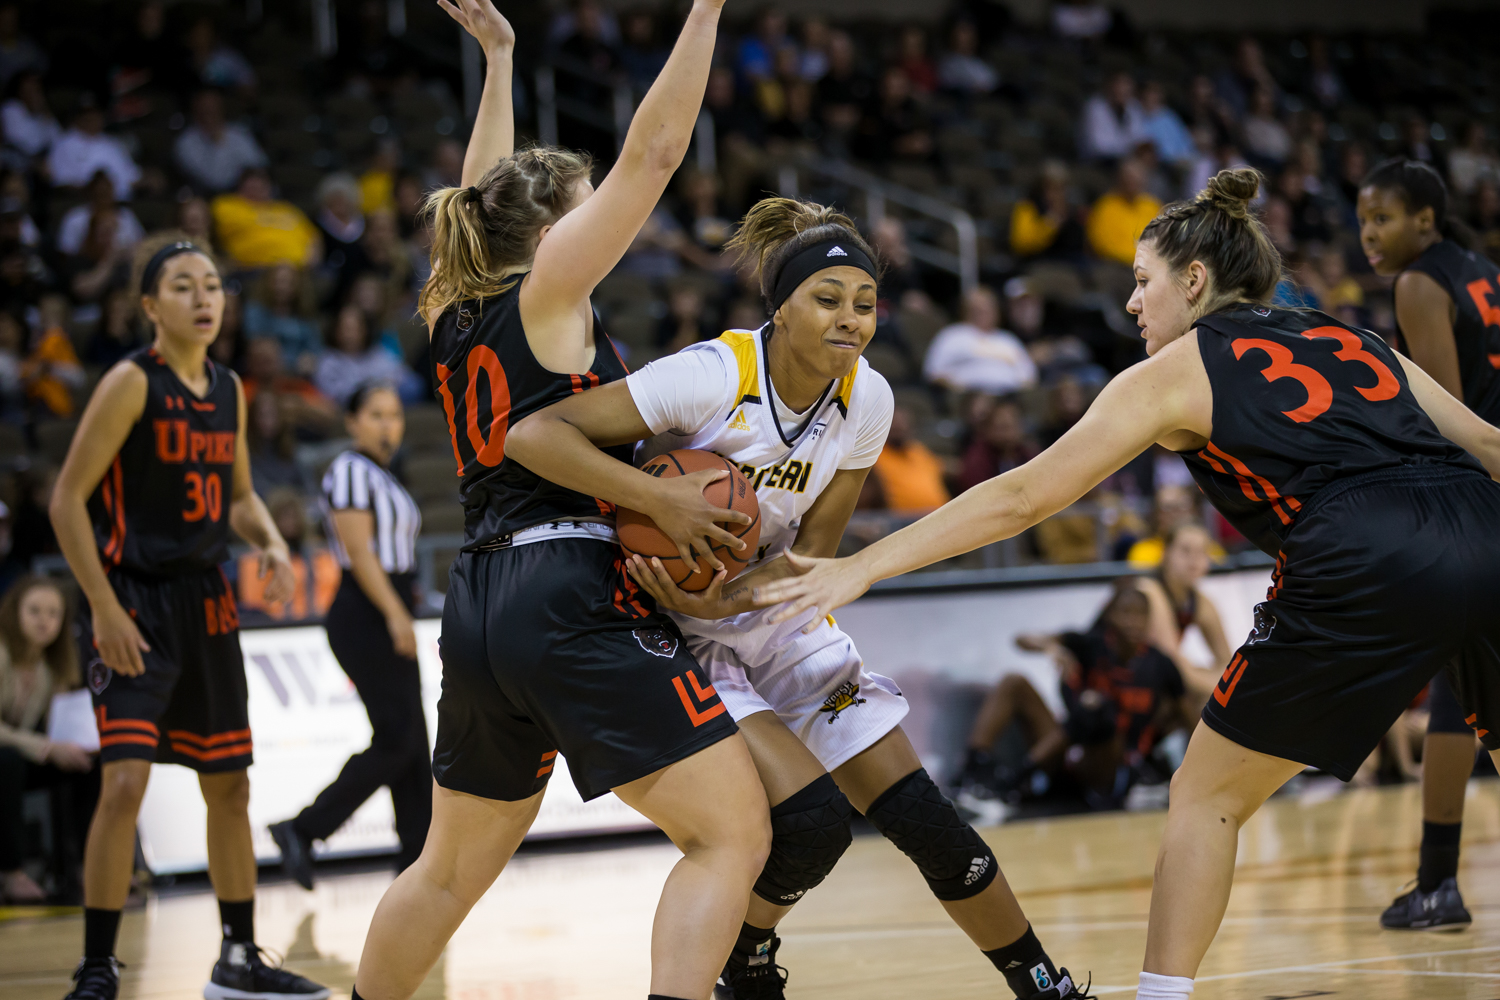 Samari Mowbray (5) fights to shoot during the game against University of Pikeville.